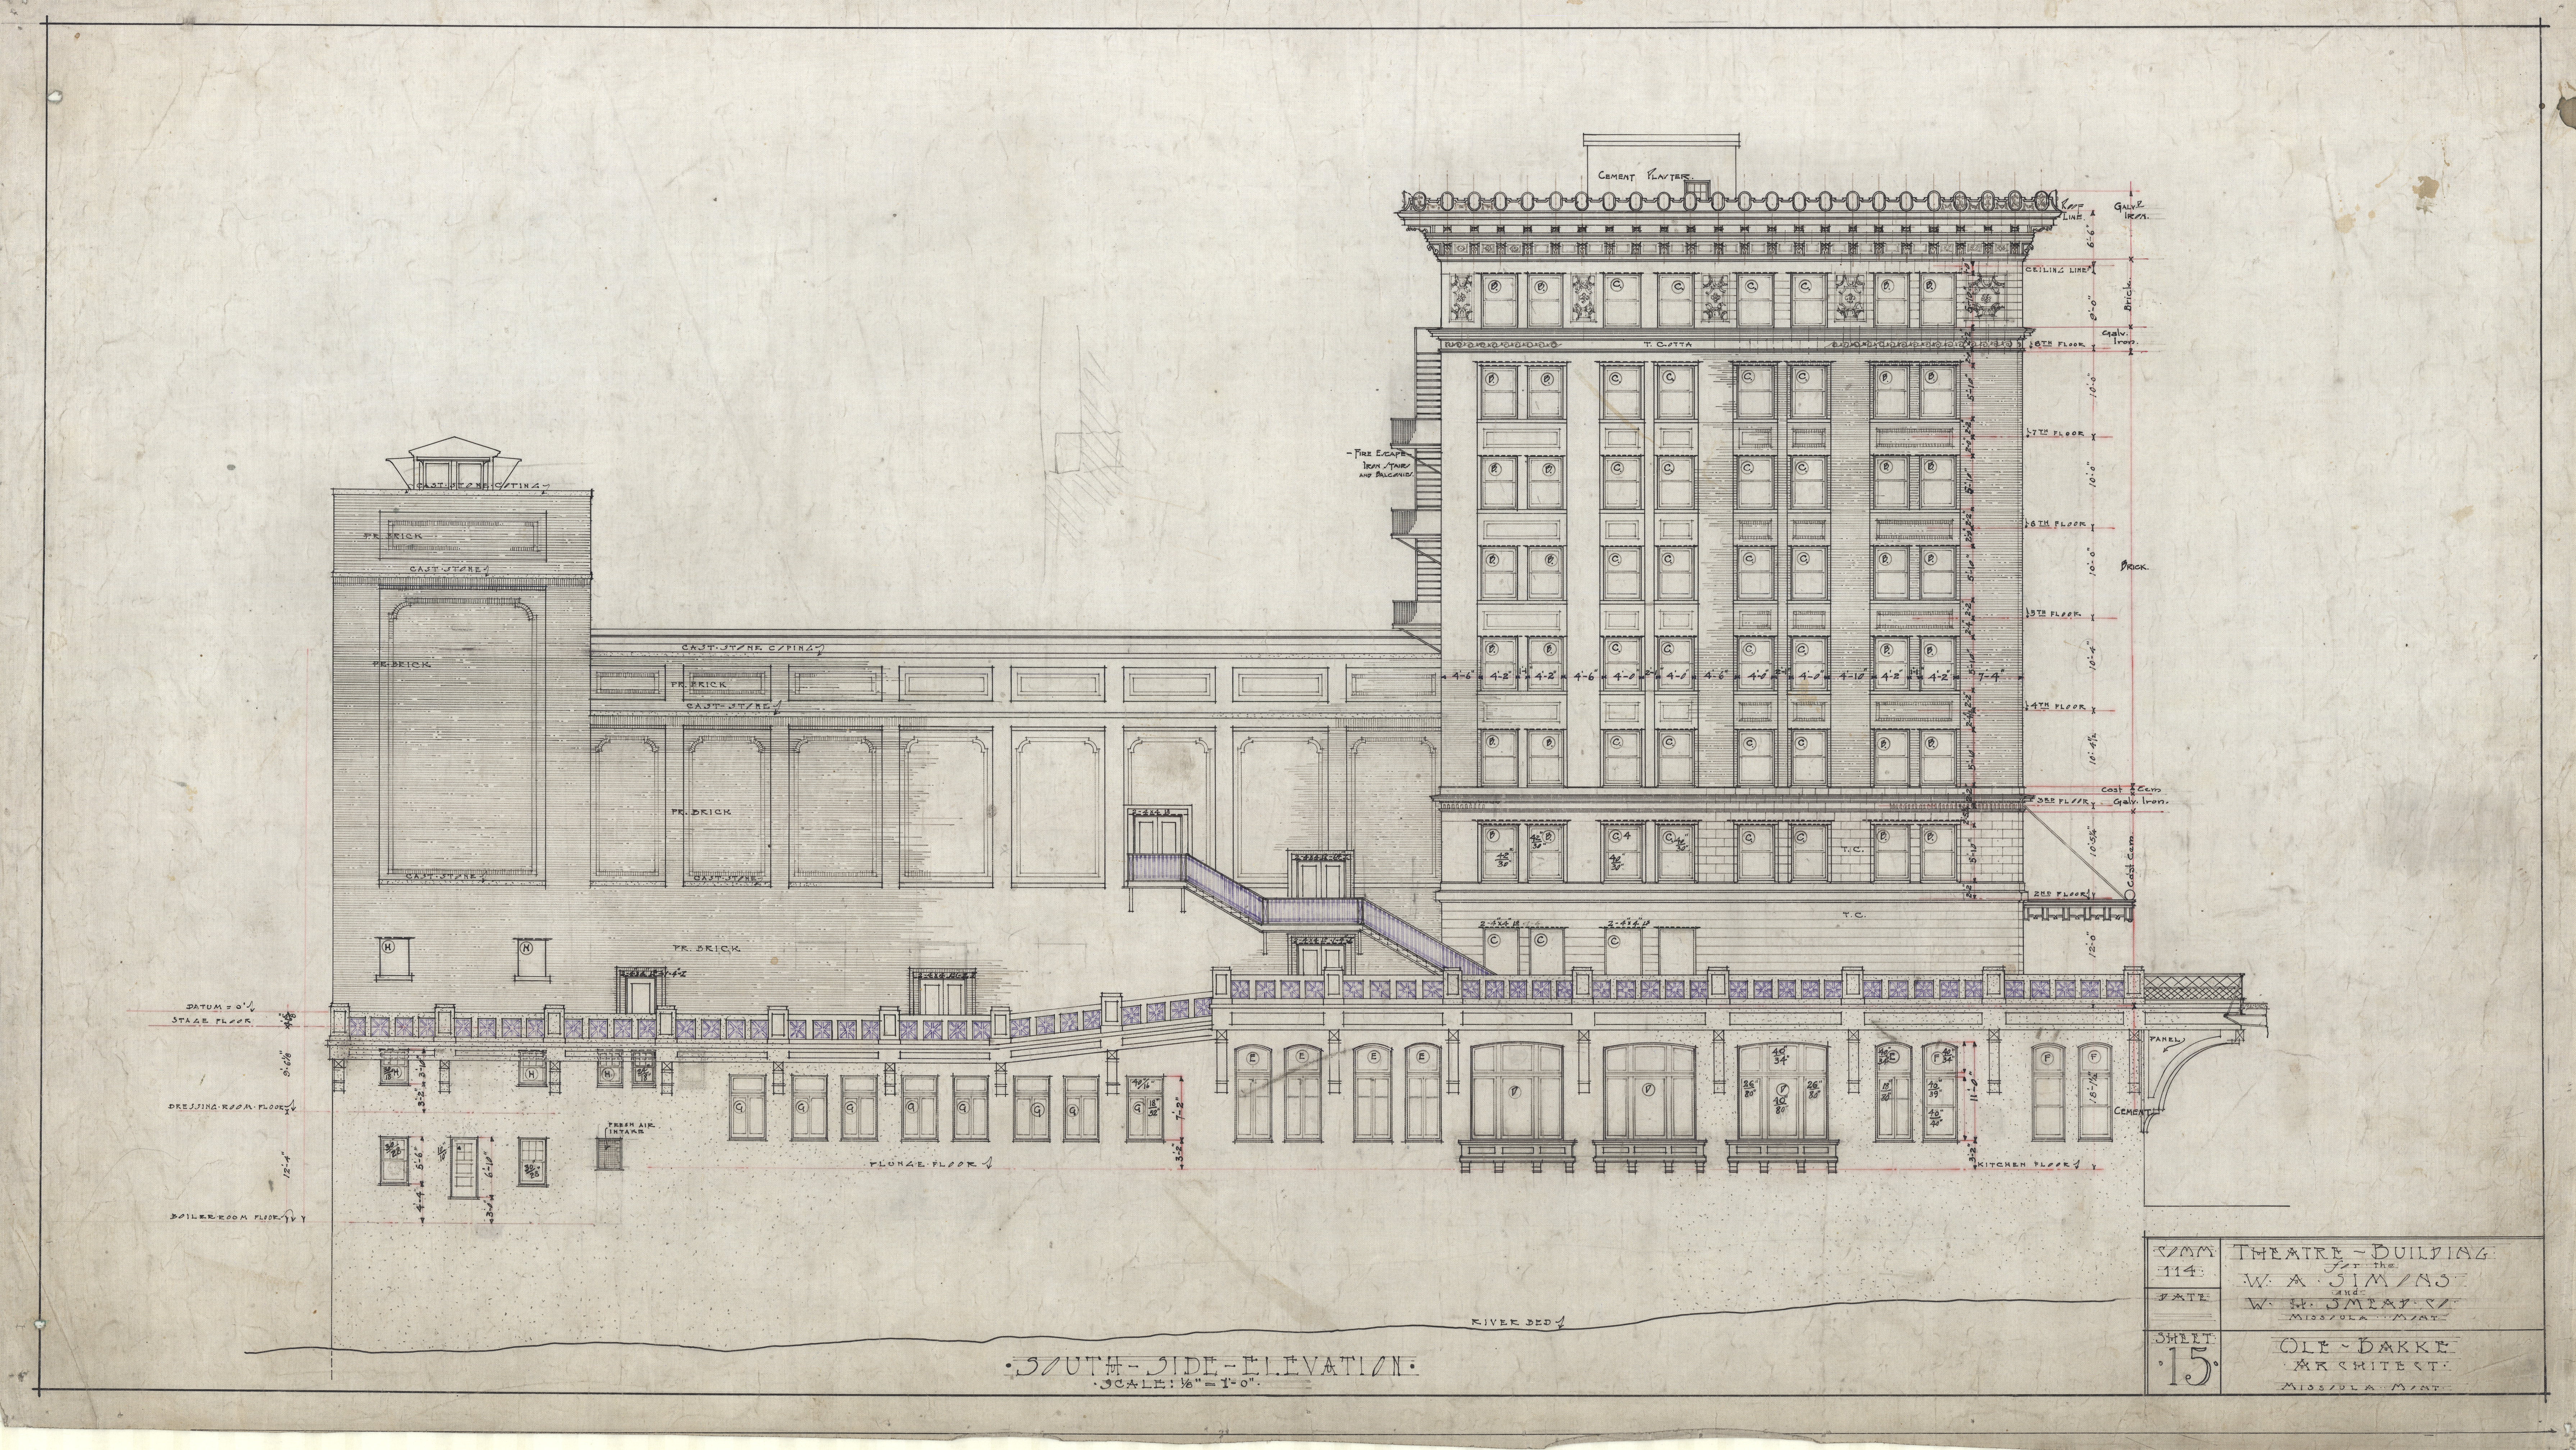 This is an original architectural drawing of the Wilma by Ole Bakke. It illustrates the side of the Wilma building facing the river.